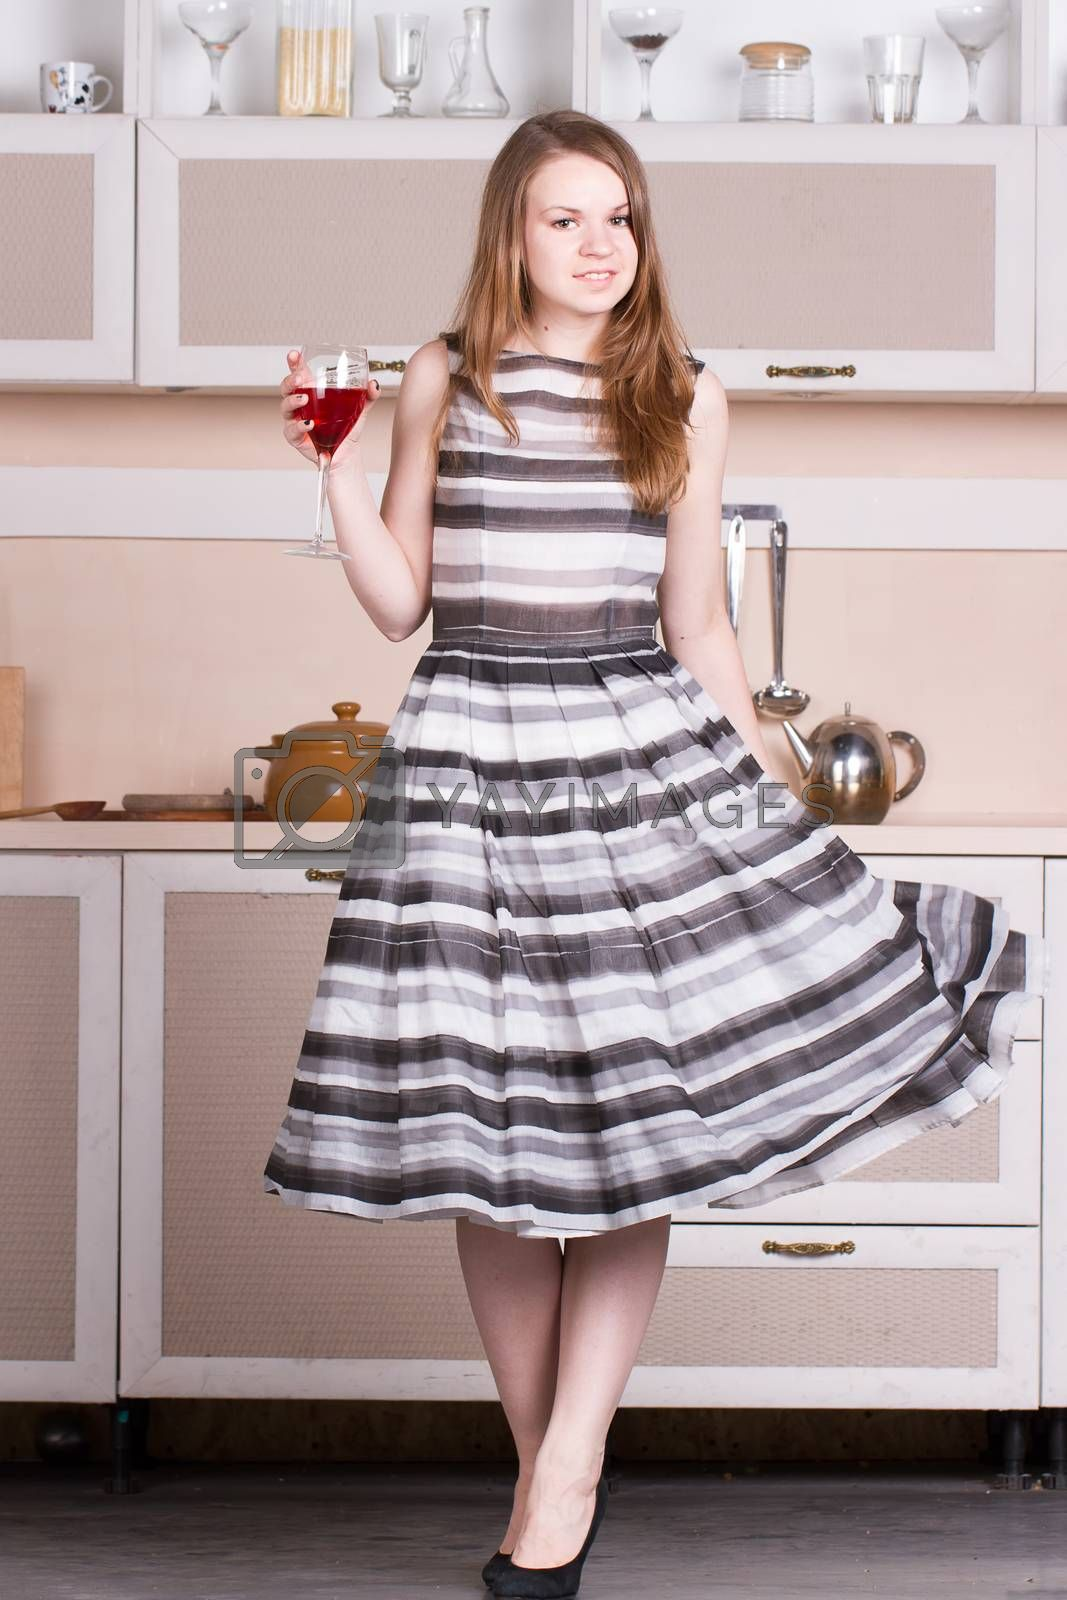 Royalty free image of Attractive young woman dress holding a glass of wine in her kitchen. by victosha